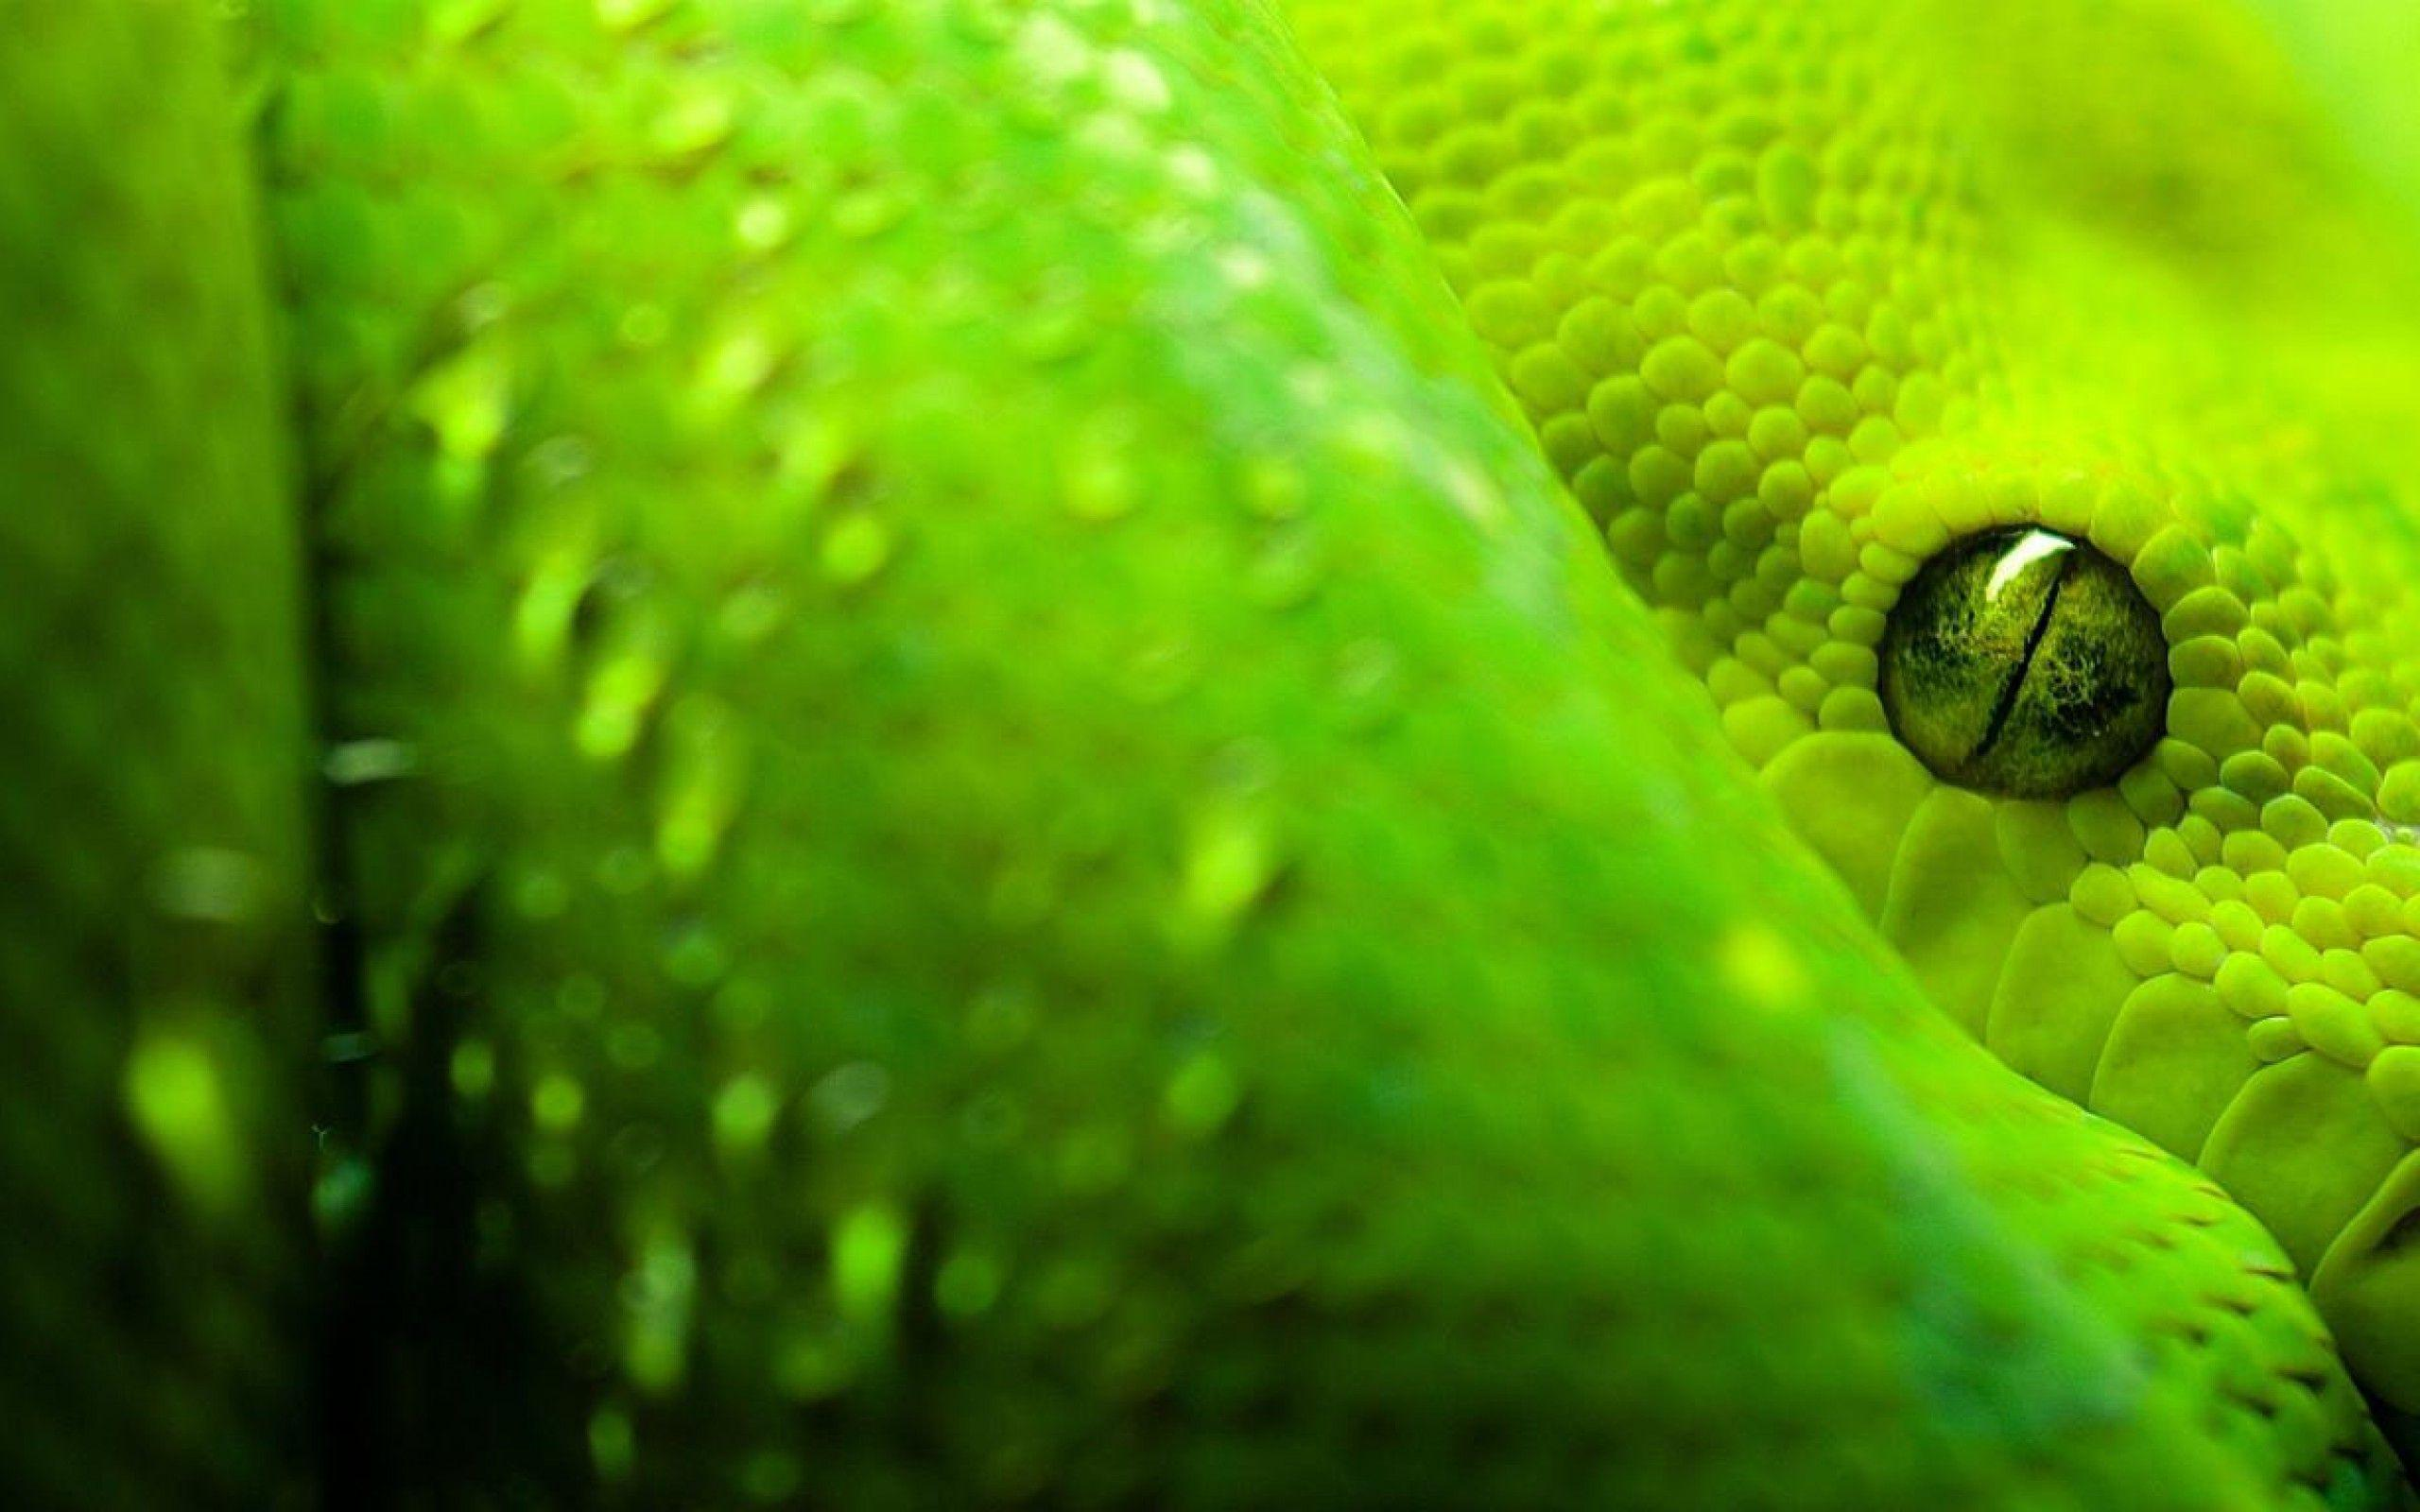 snake wallpaper | snake wallpaper - Part 6